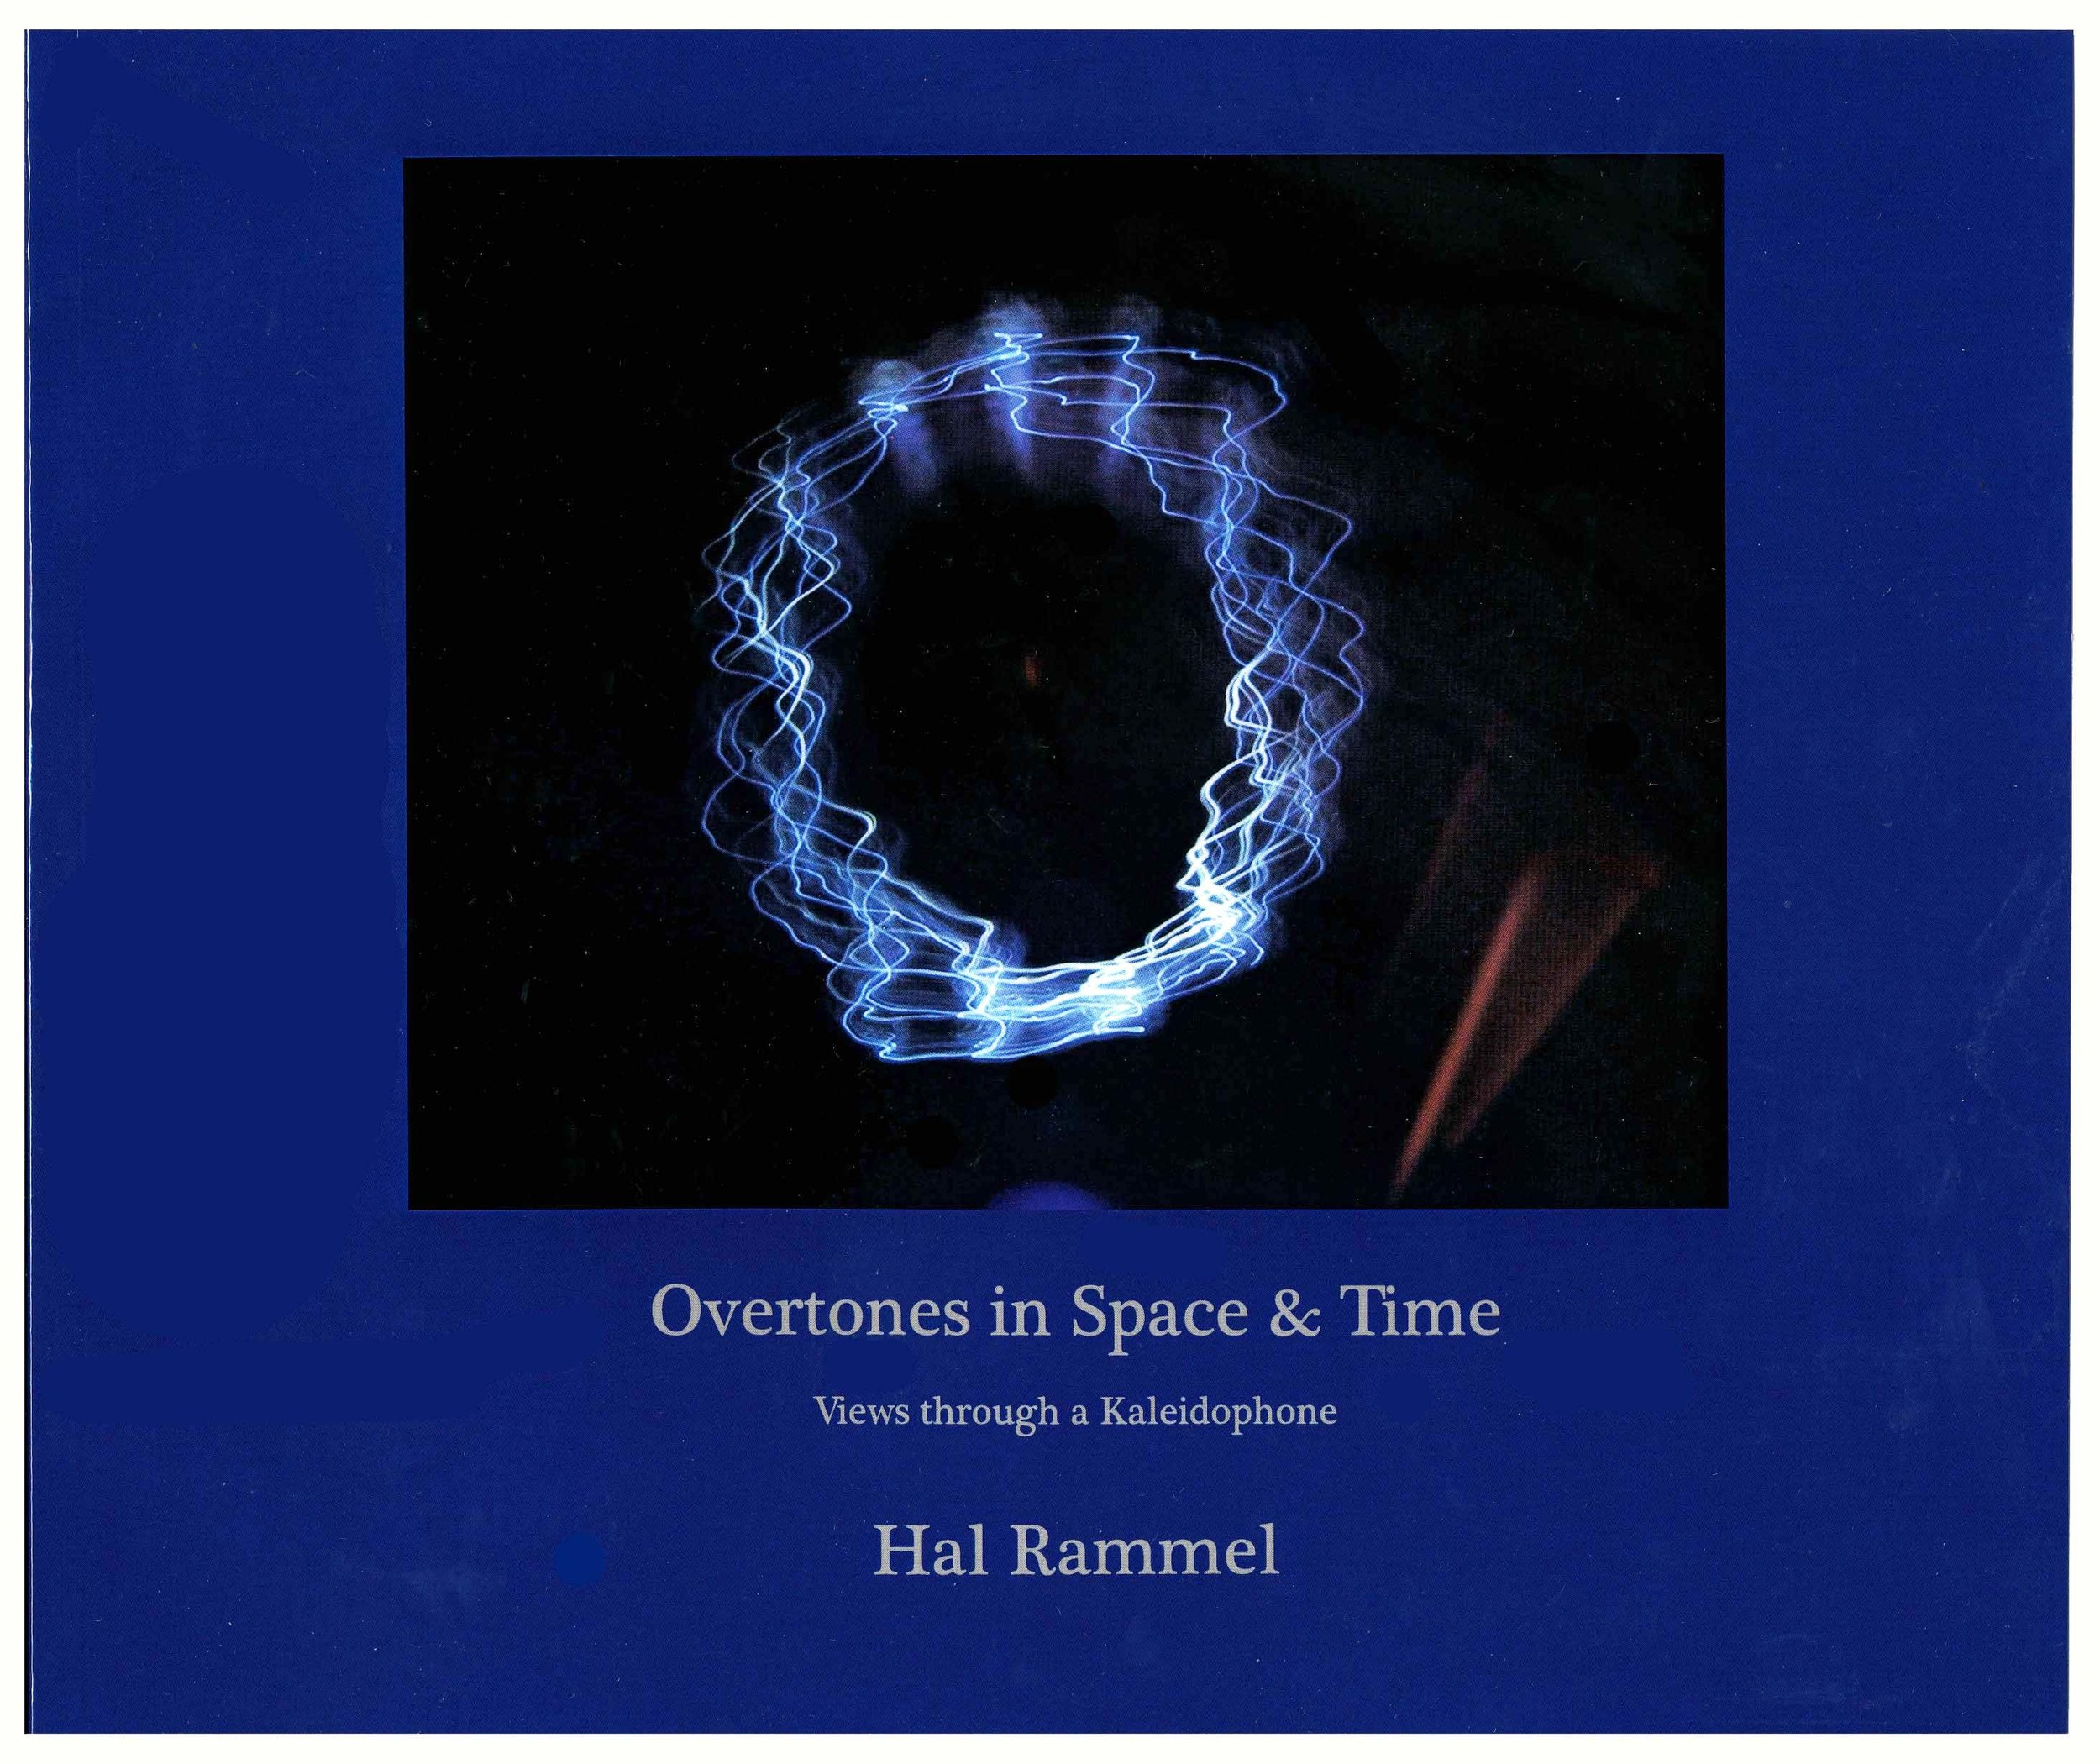 Overtones in Space & Time, 2018